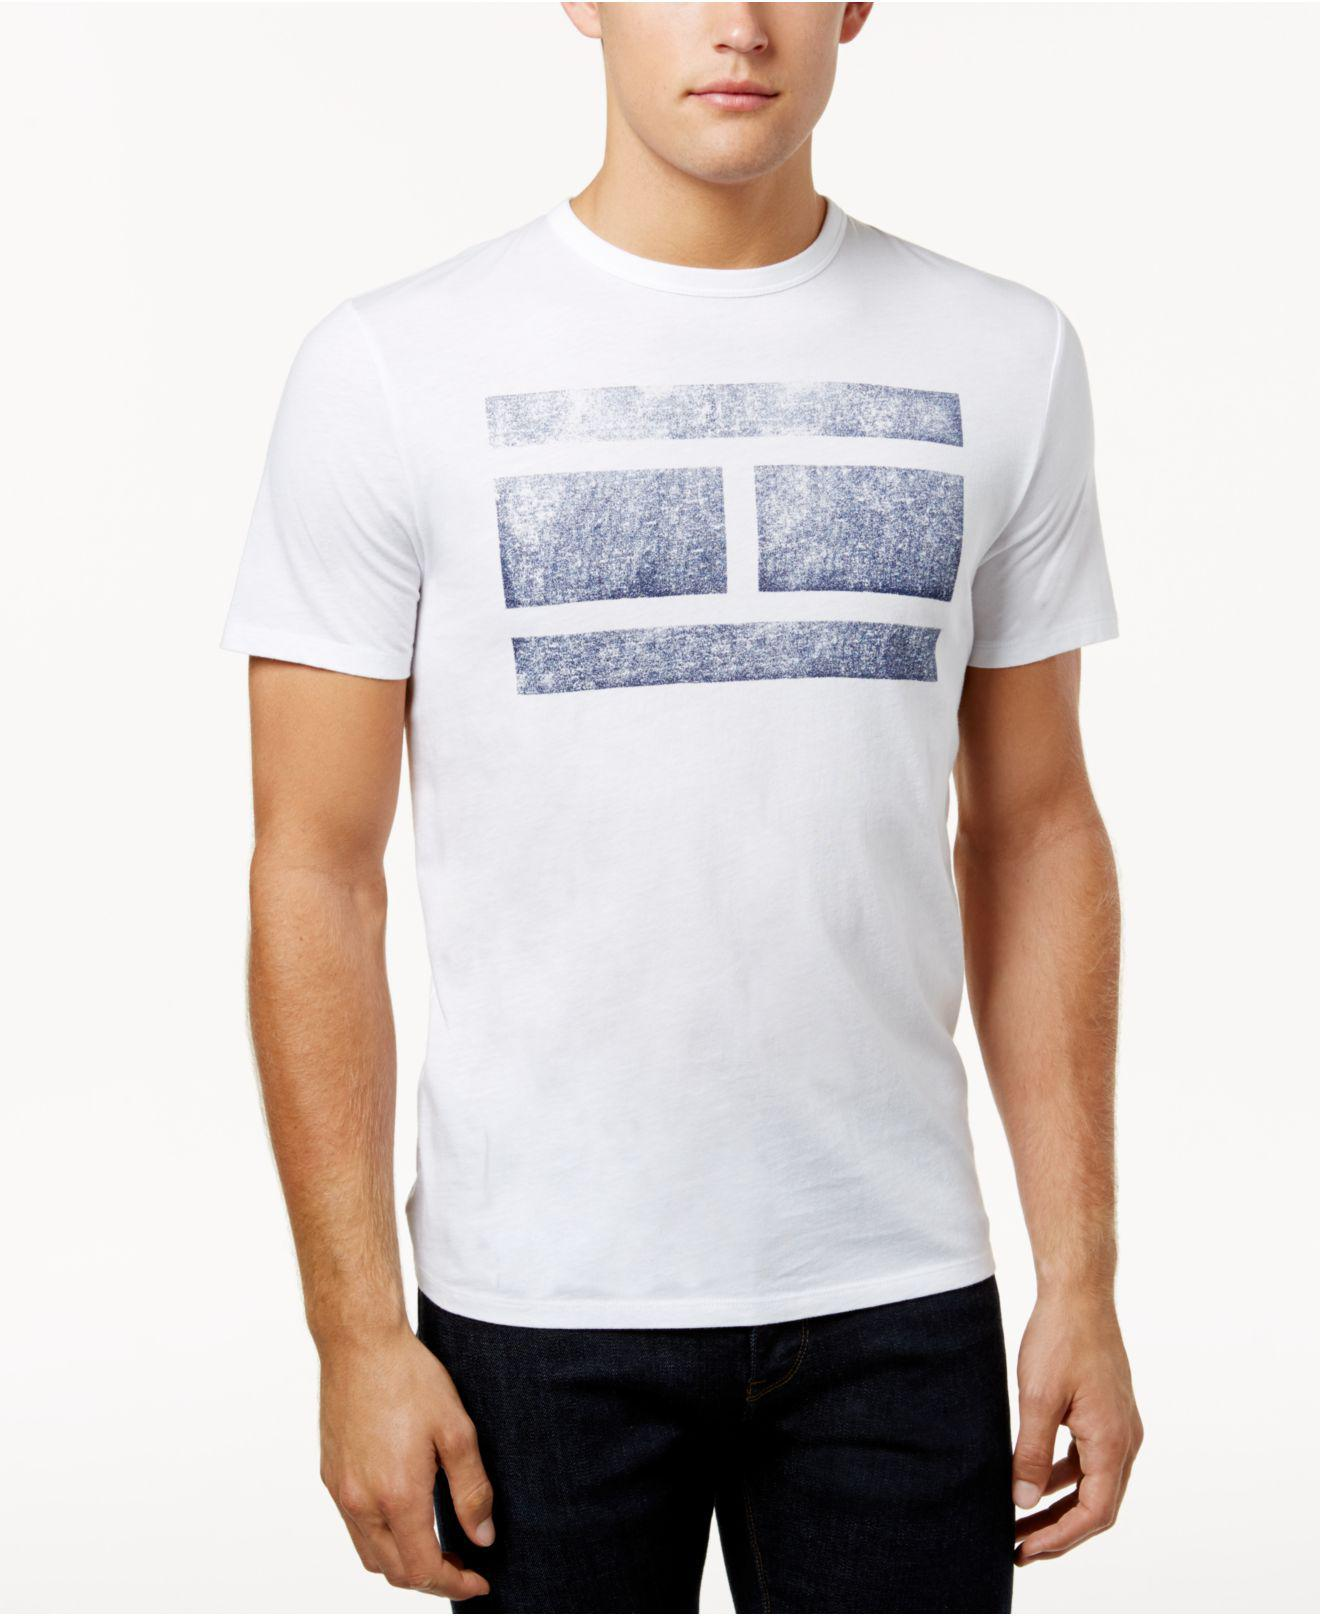 ceedaf684b7b40 Tommy Hilfiger - White Men s Virtue Graphic-print T-shirt for Men - Lyst